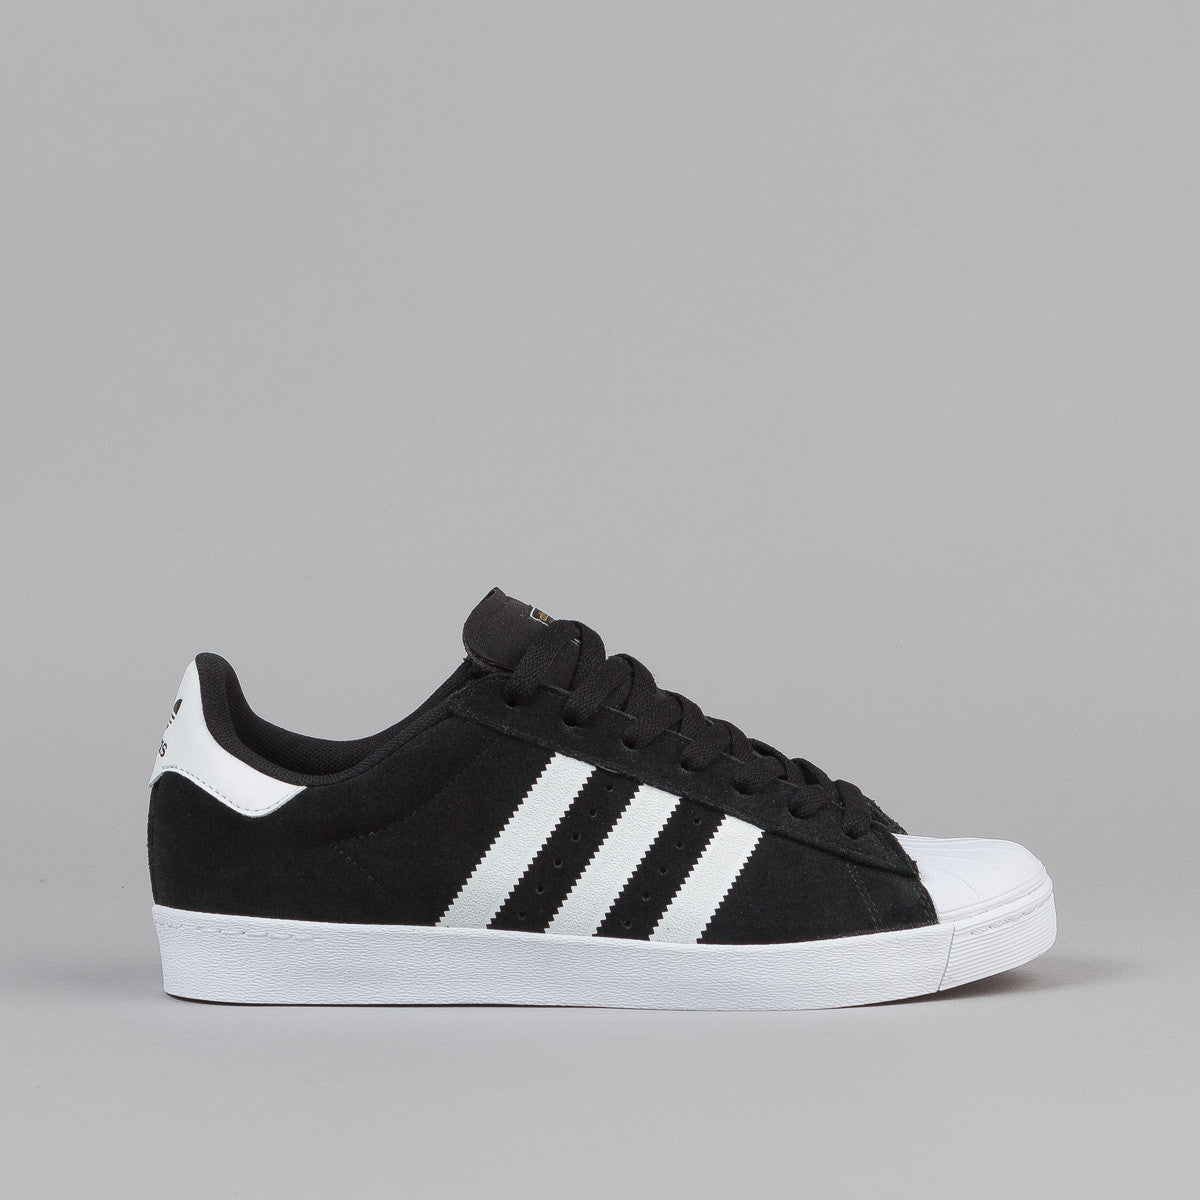 Limited Edition Men Adidas Superstar Vulc ADV & Core Black, Retail